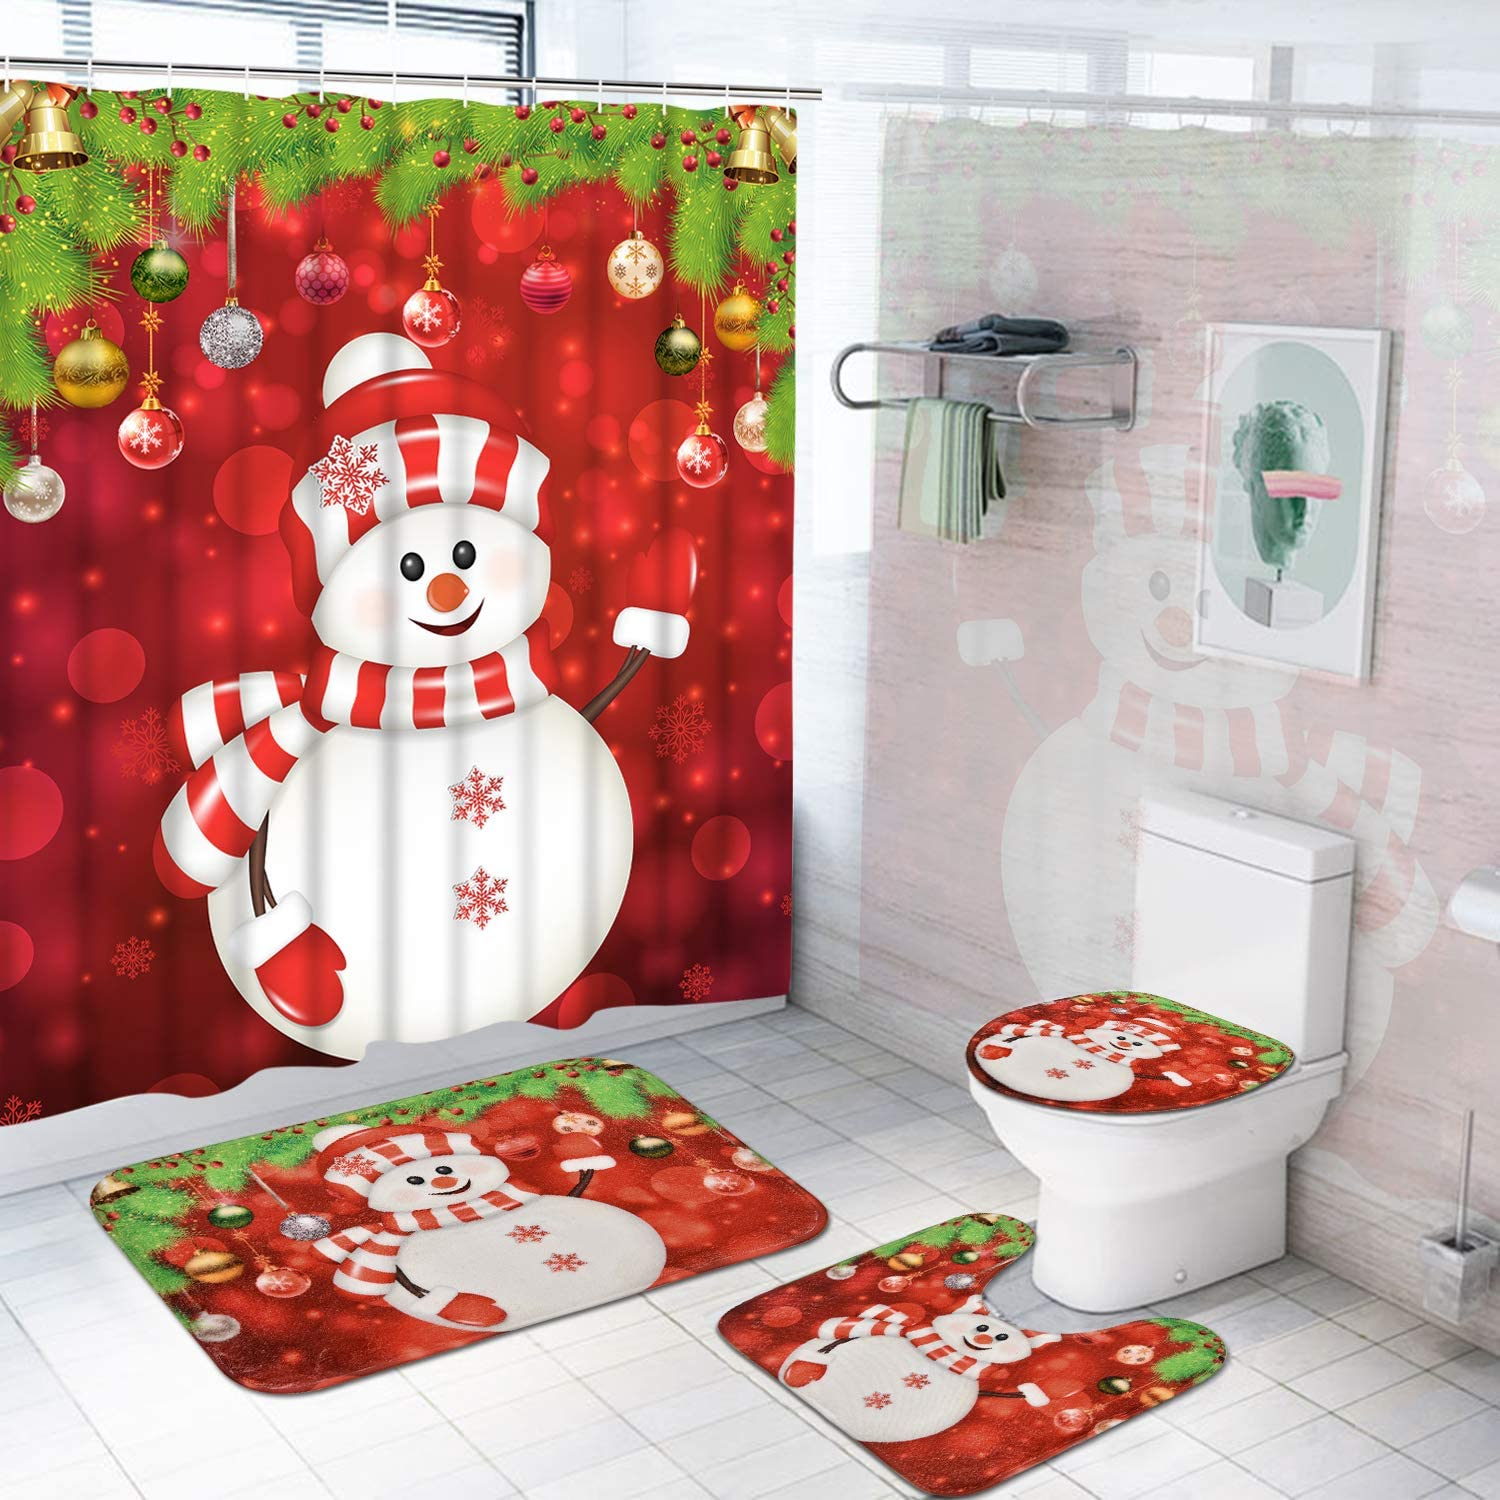 Pknoclan 4Pcs Merry Christmas Shower Curtain Set with Non-Slip Rug, Toilet Lid Cover and Bath Mat, Xmas Snowman Shower Curtains with 12 Hooks, Christmas Balls Shower Curtain for Bathroom, Red